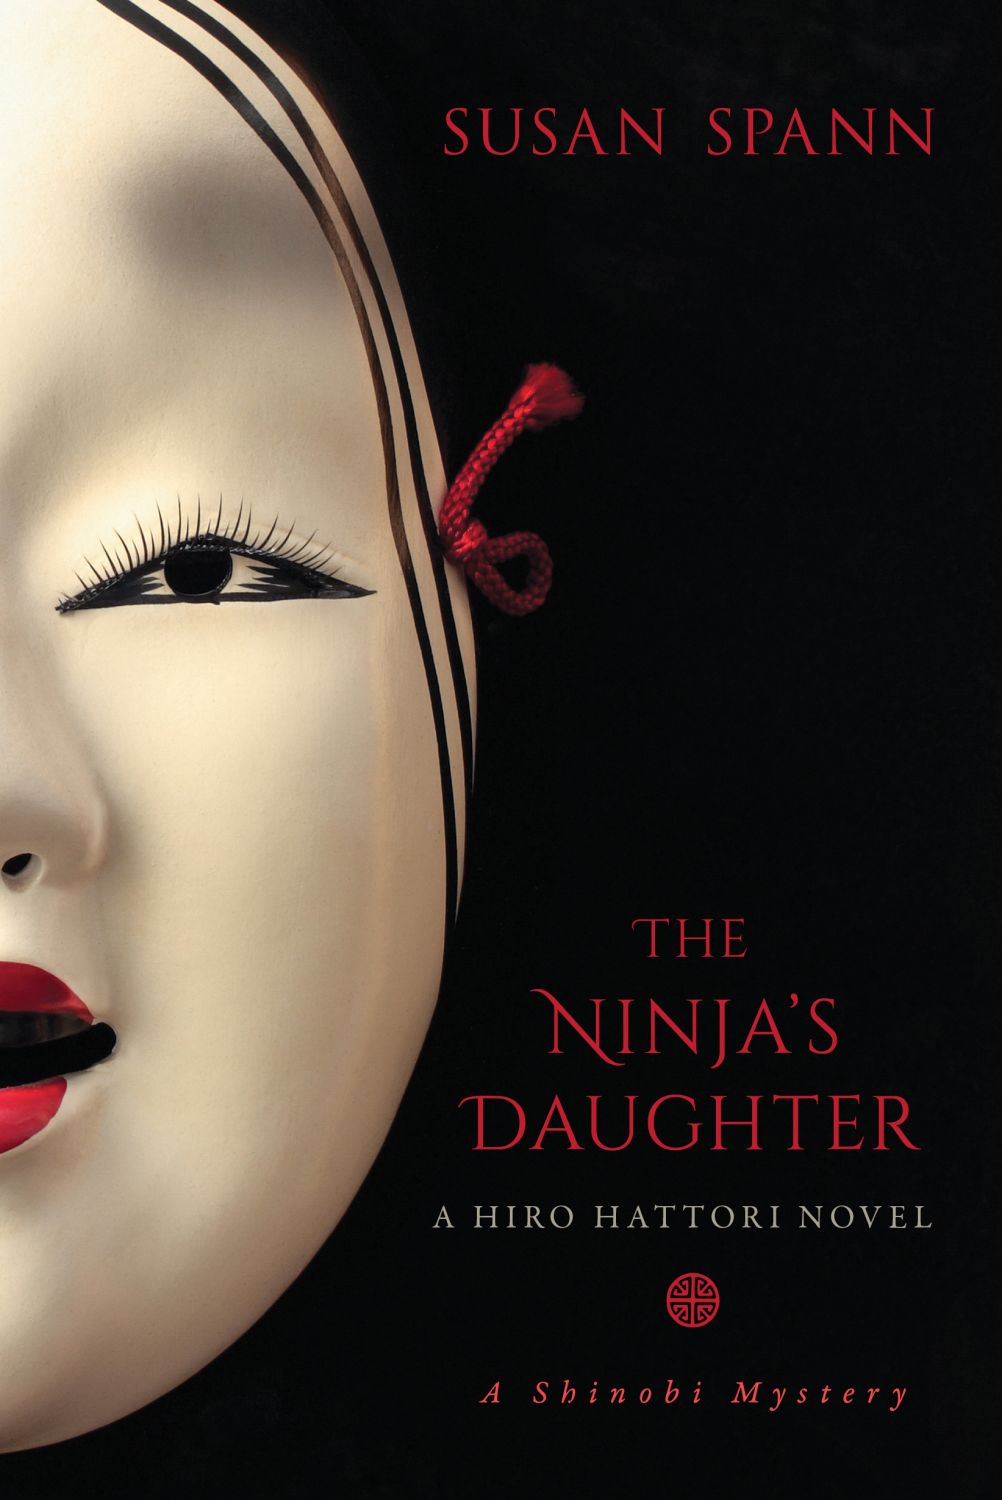 The Ninja's Daughter by Susan Spann – Blog Tour, Book Review